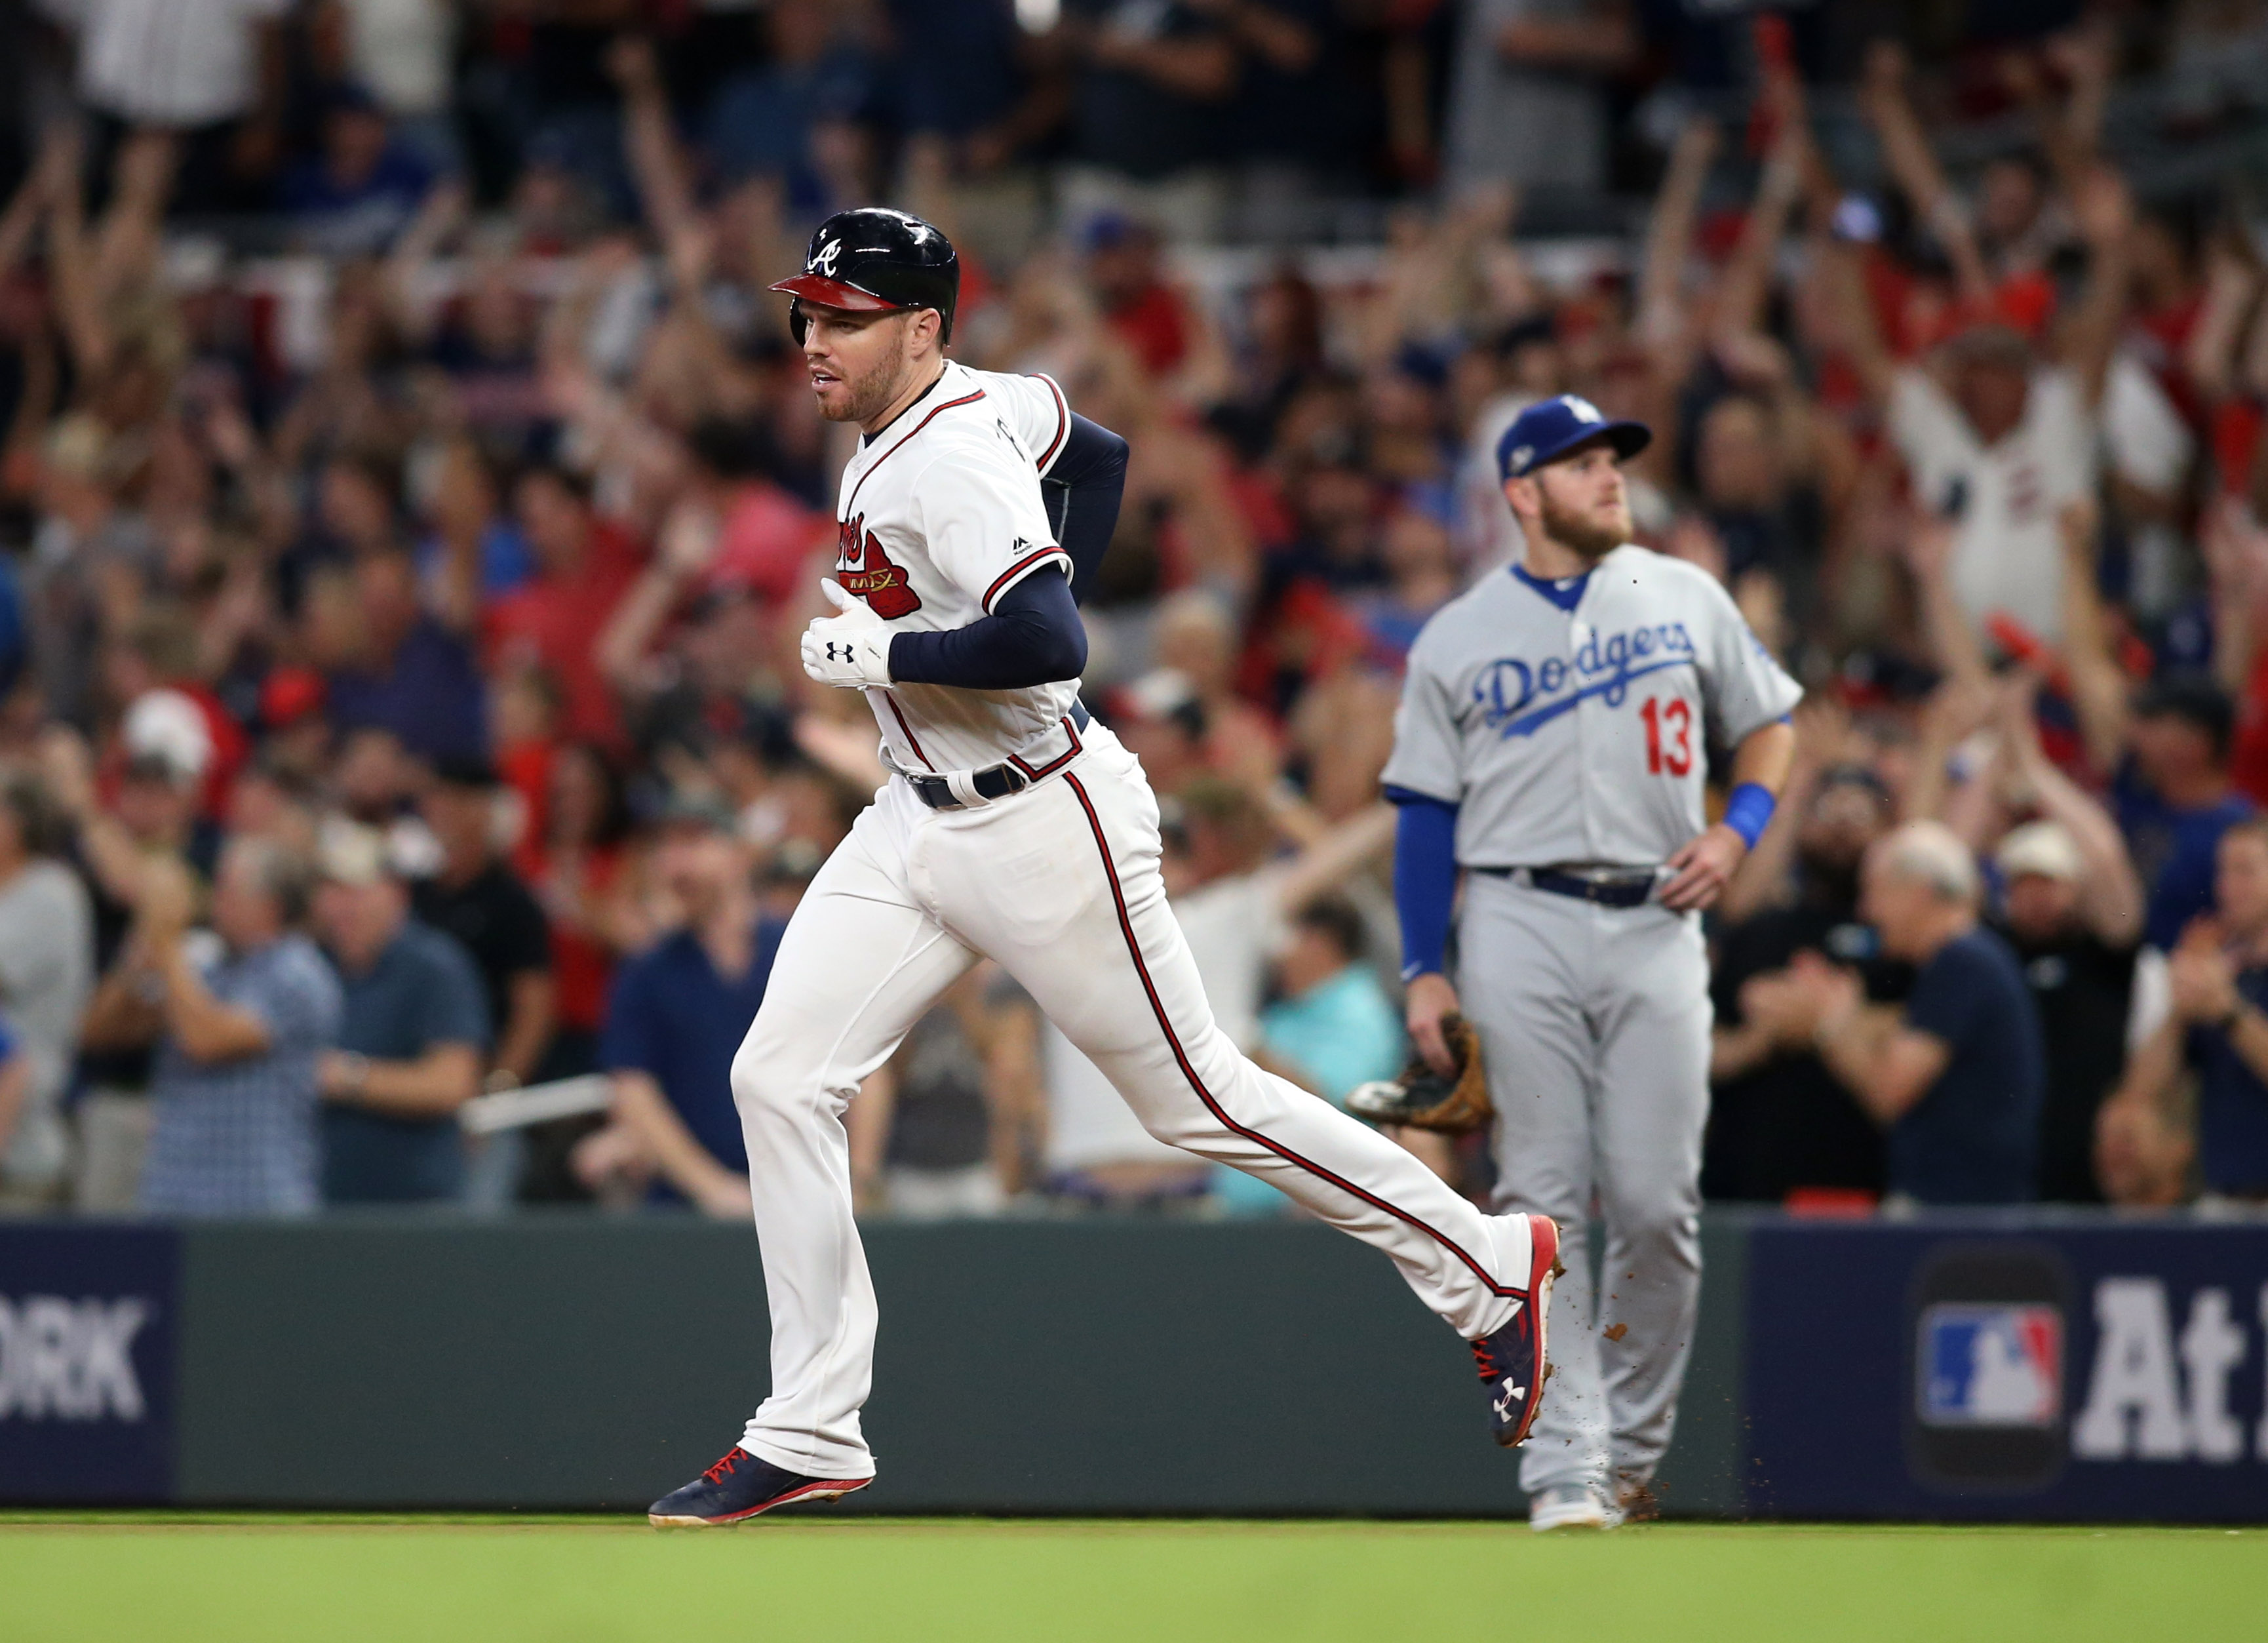 Freddie Freeman's Blast Keeps Season Alive for Braves